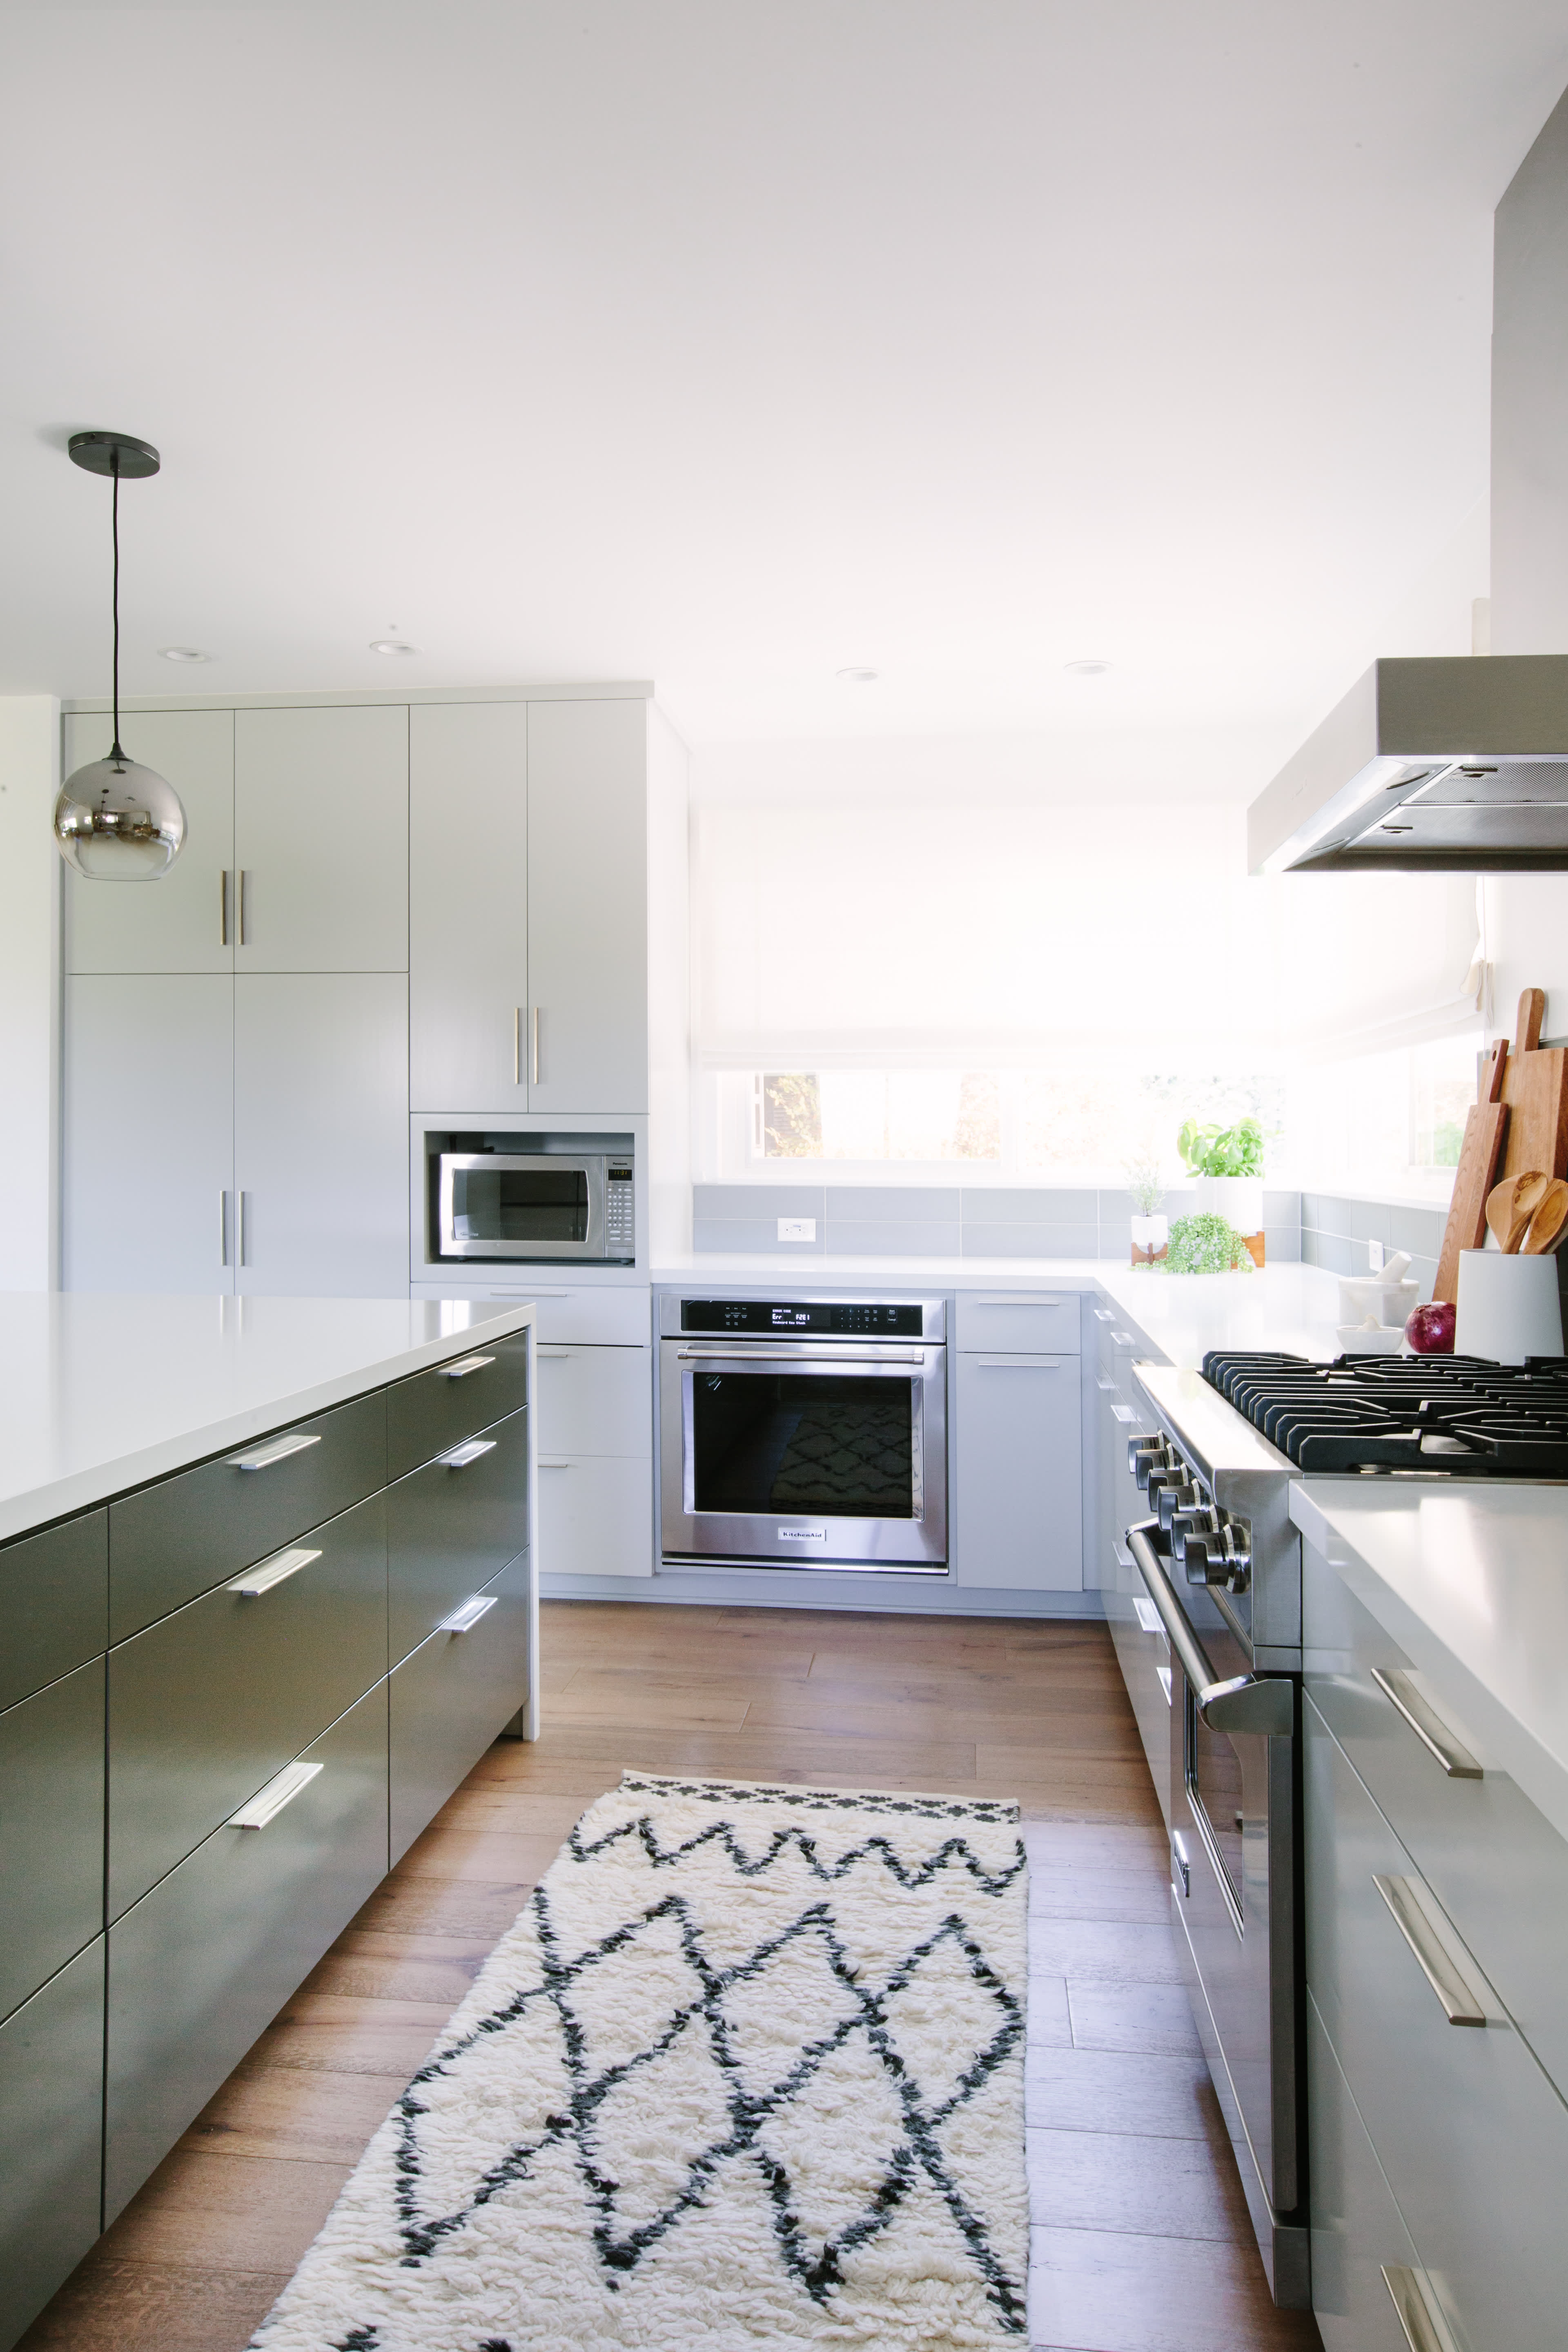 You Won't Recognize This Dated Suburban Kitchen After Its Renovation: gallery image 3